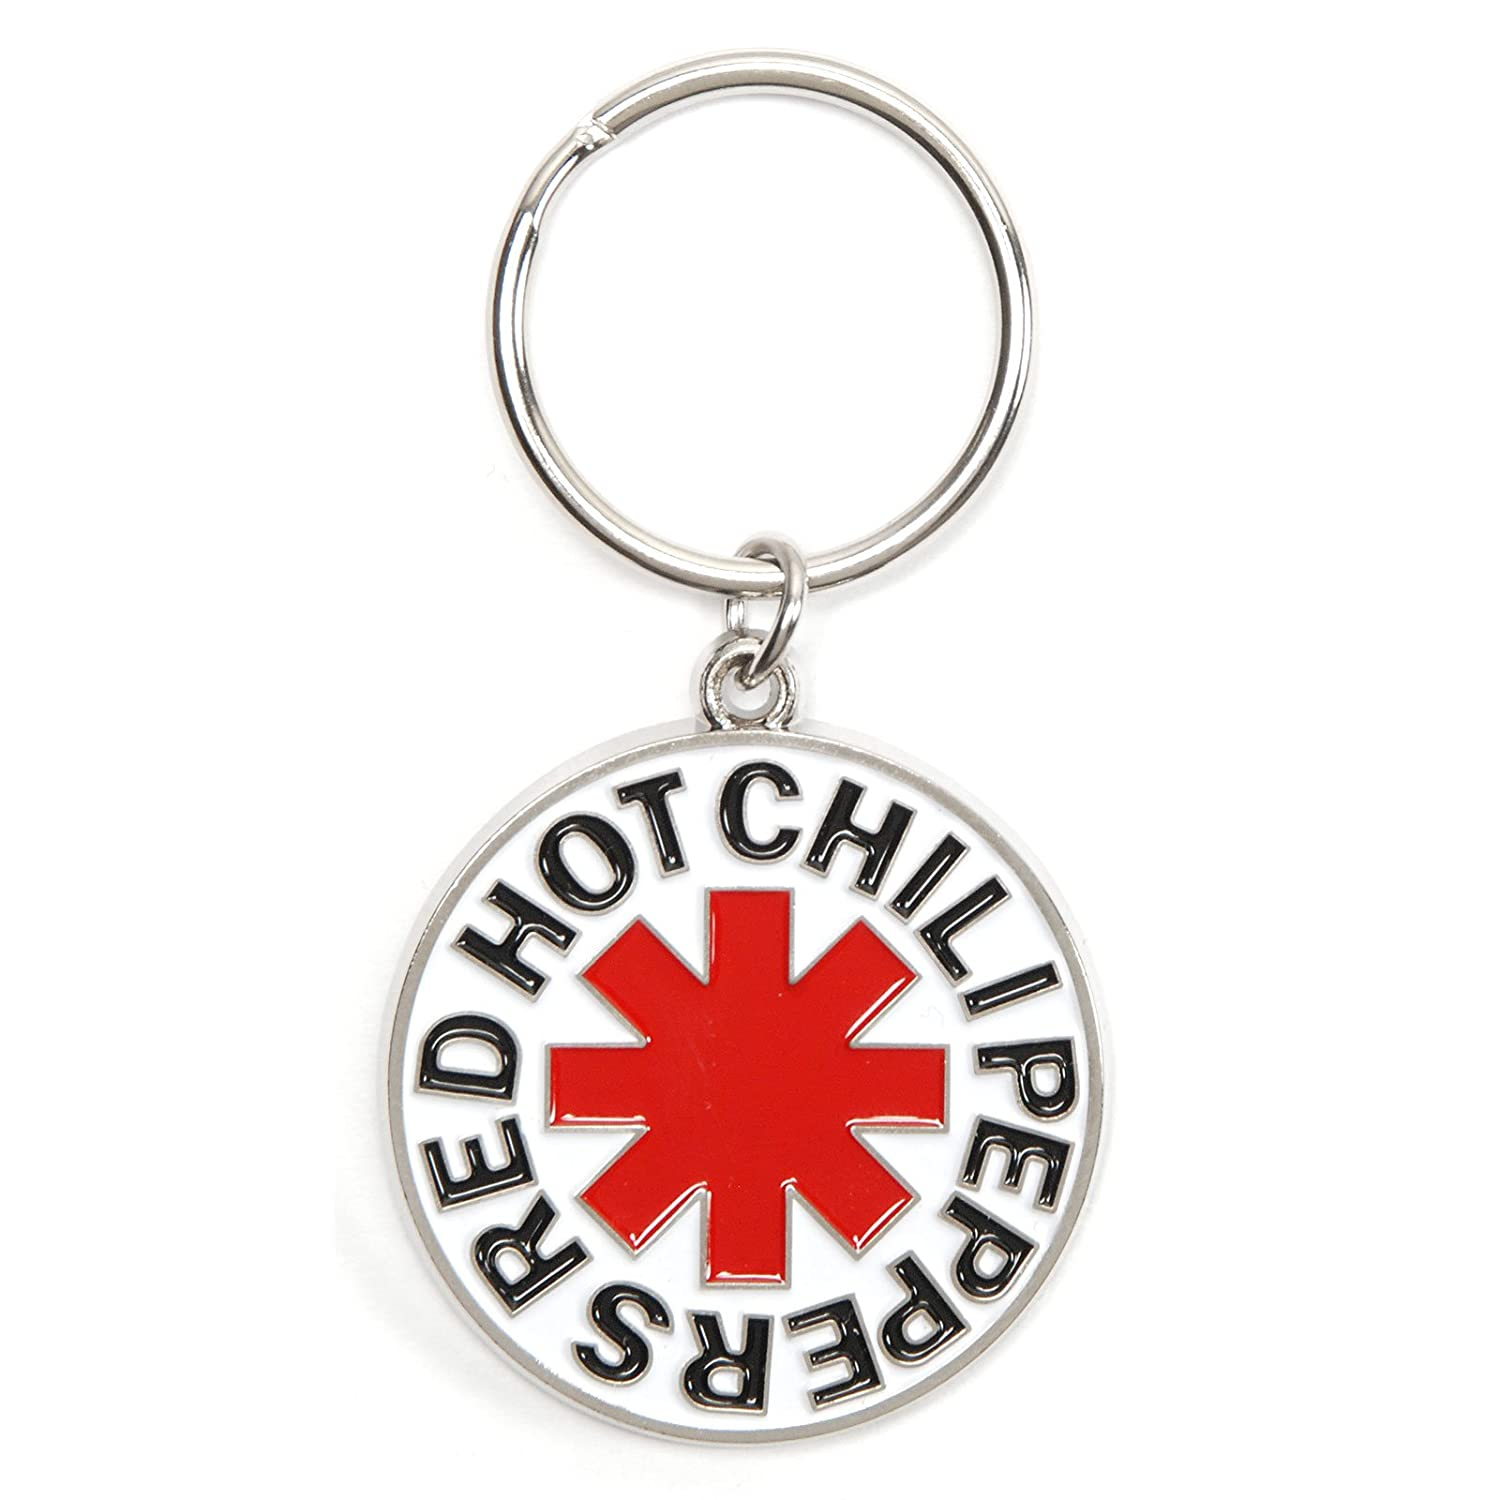 Amazon.com: Red Hot Chili Peppers – Asterisk metal Key ...